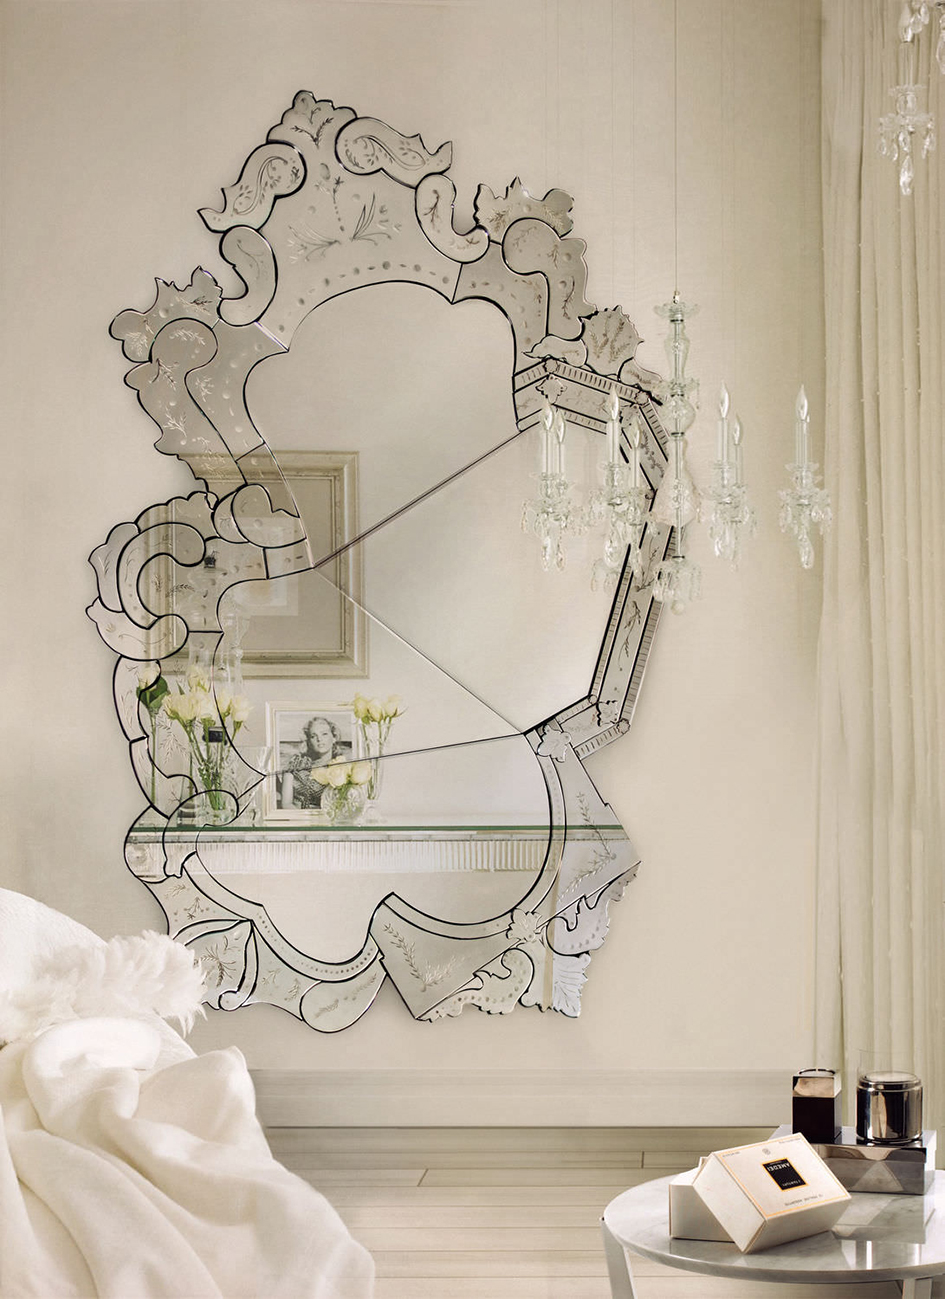 100 Must-See Wall Mirror Ideas wall mirror 100 Must-See Wall Mirror Ideas img549